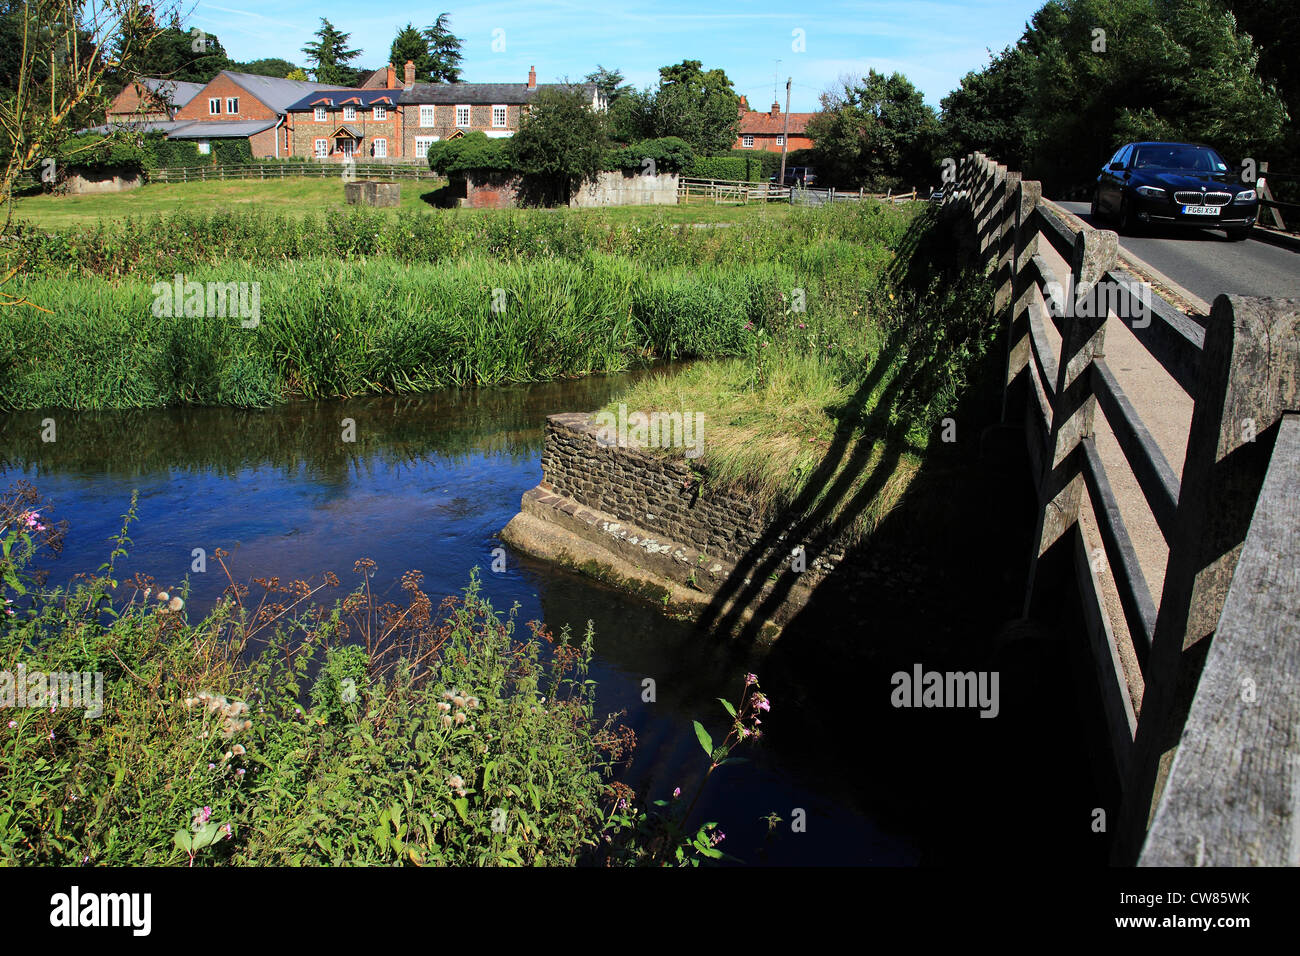 Tilford bridge and river Wey, Tilford village, Surrey Hills, England - Stock Image